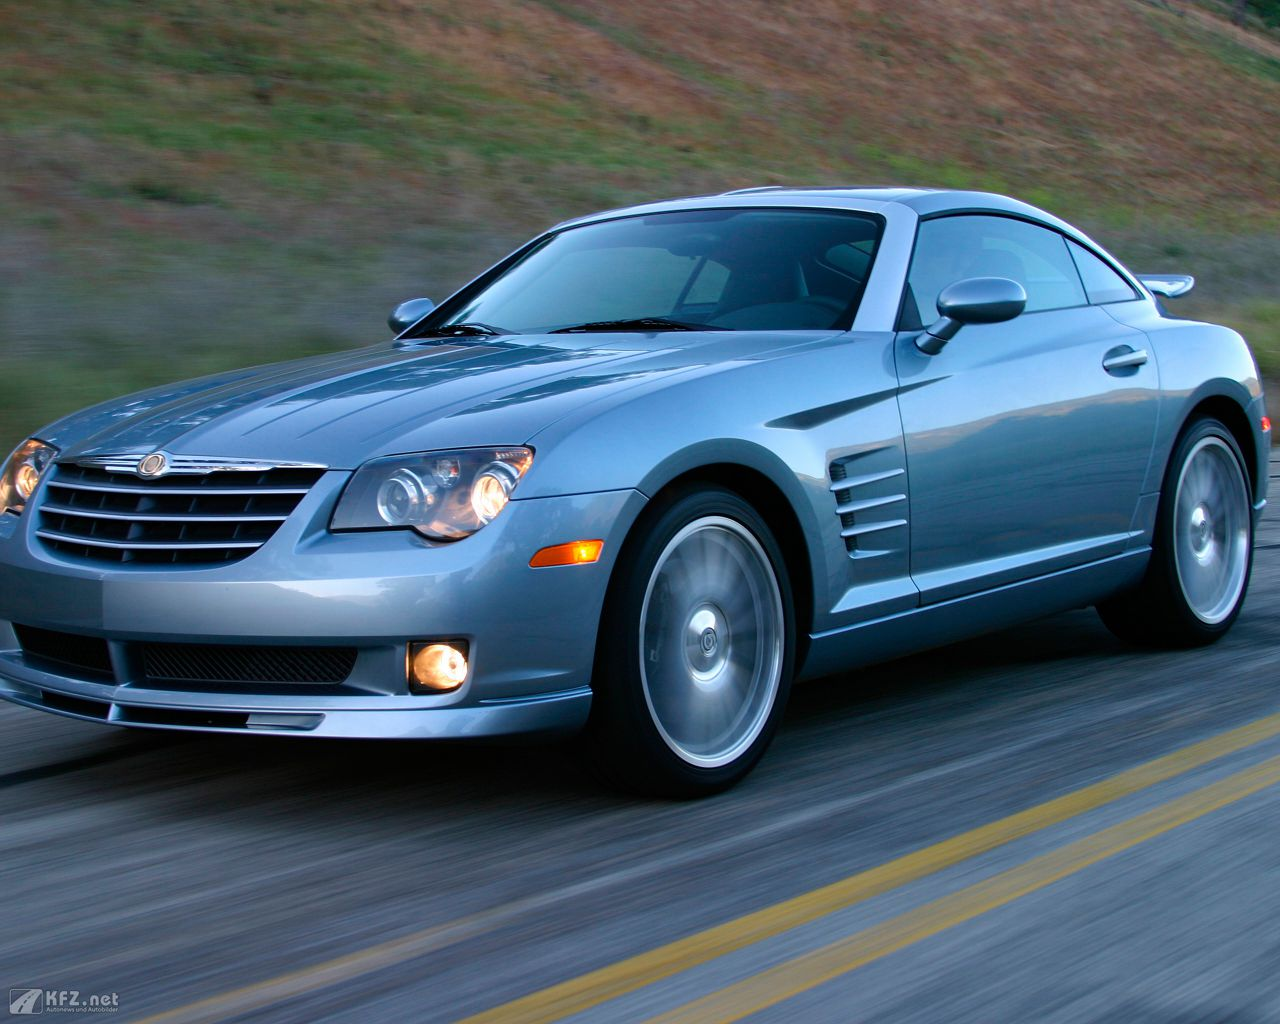 chrysler-crossfire-1280x1024-20